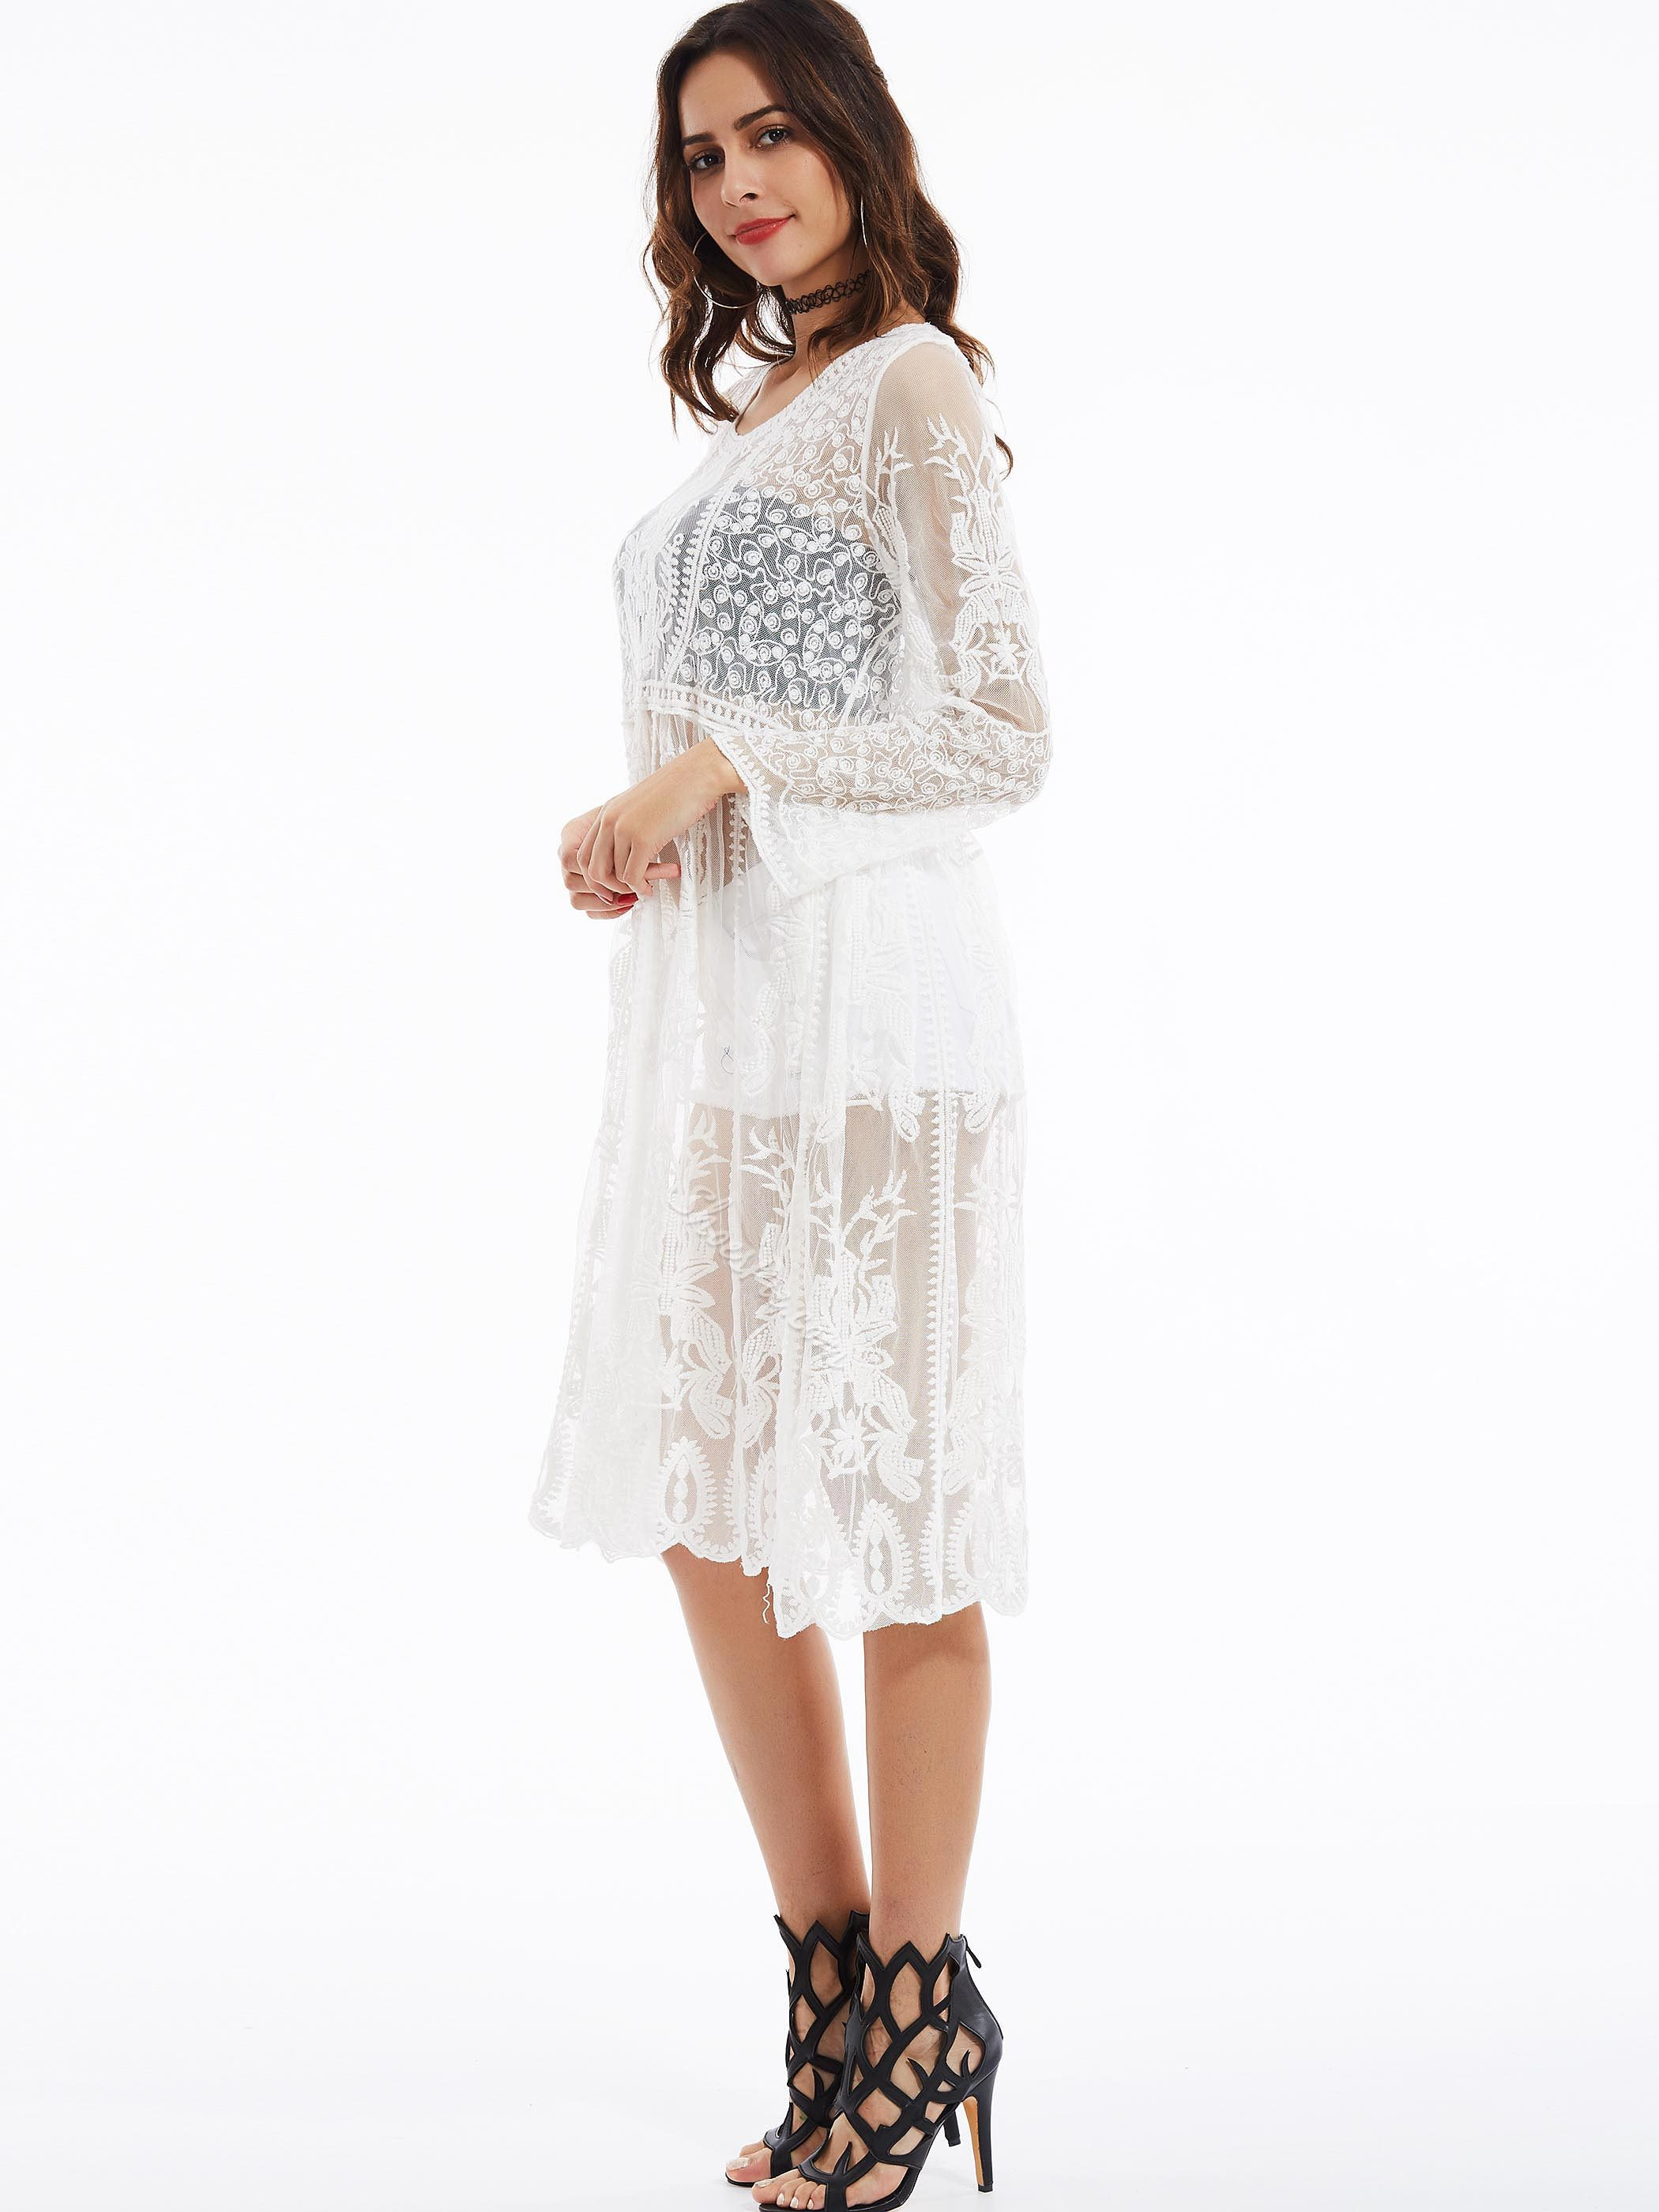 Shoesspie Round Neck Flare Sleeves See-Through Lace Dress